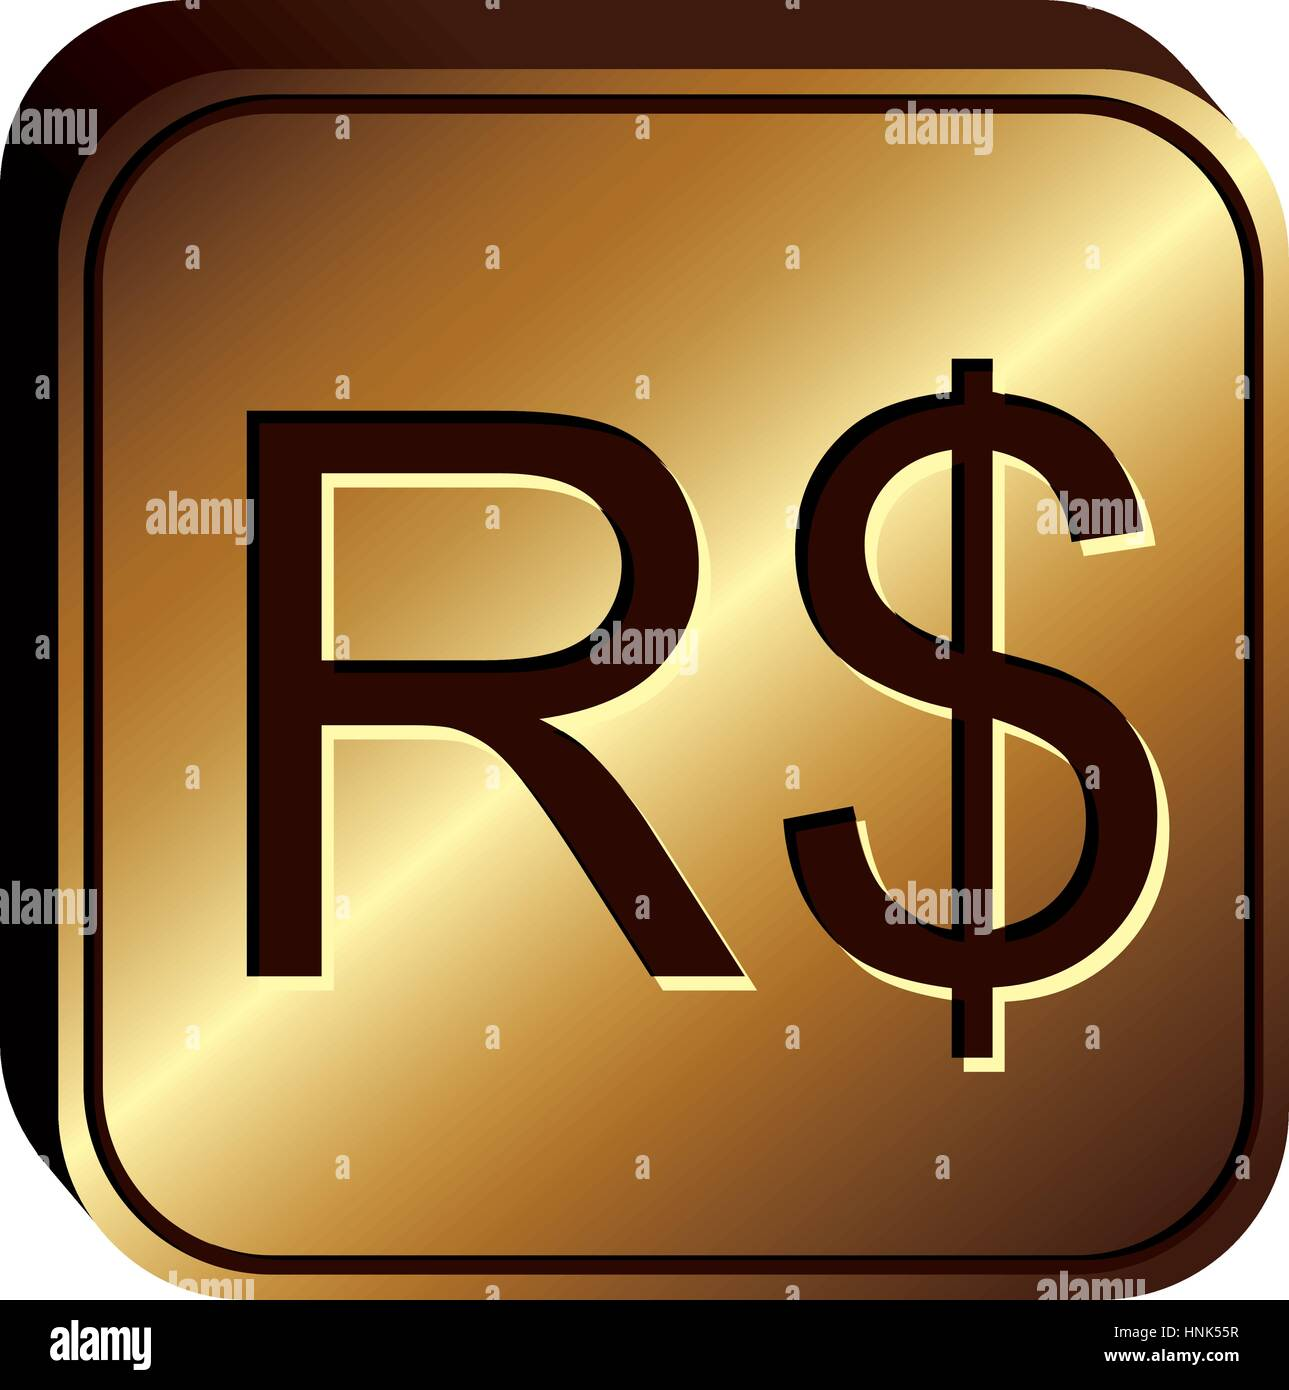 Real brazil currency symbol icon image vector illustration stock real brazil currency symbol icon image vector illustration biocorpaavc Image collections